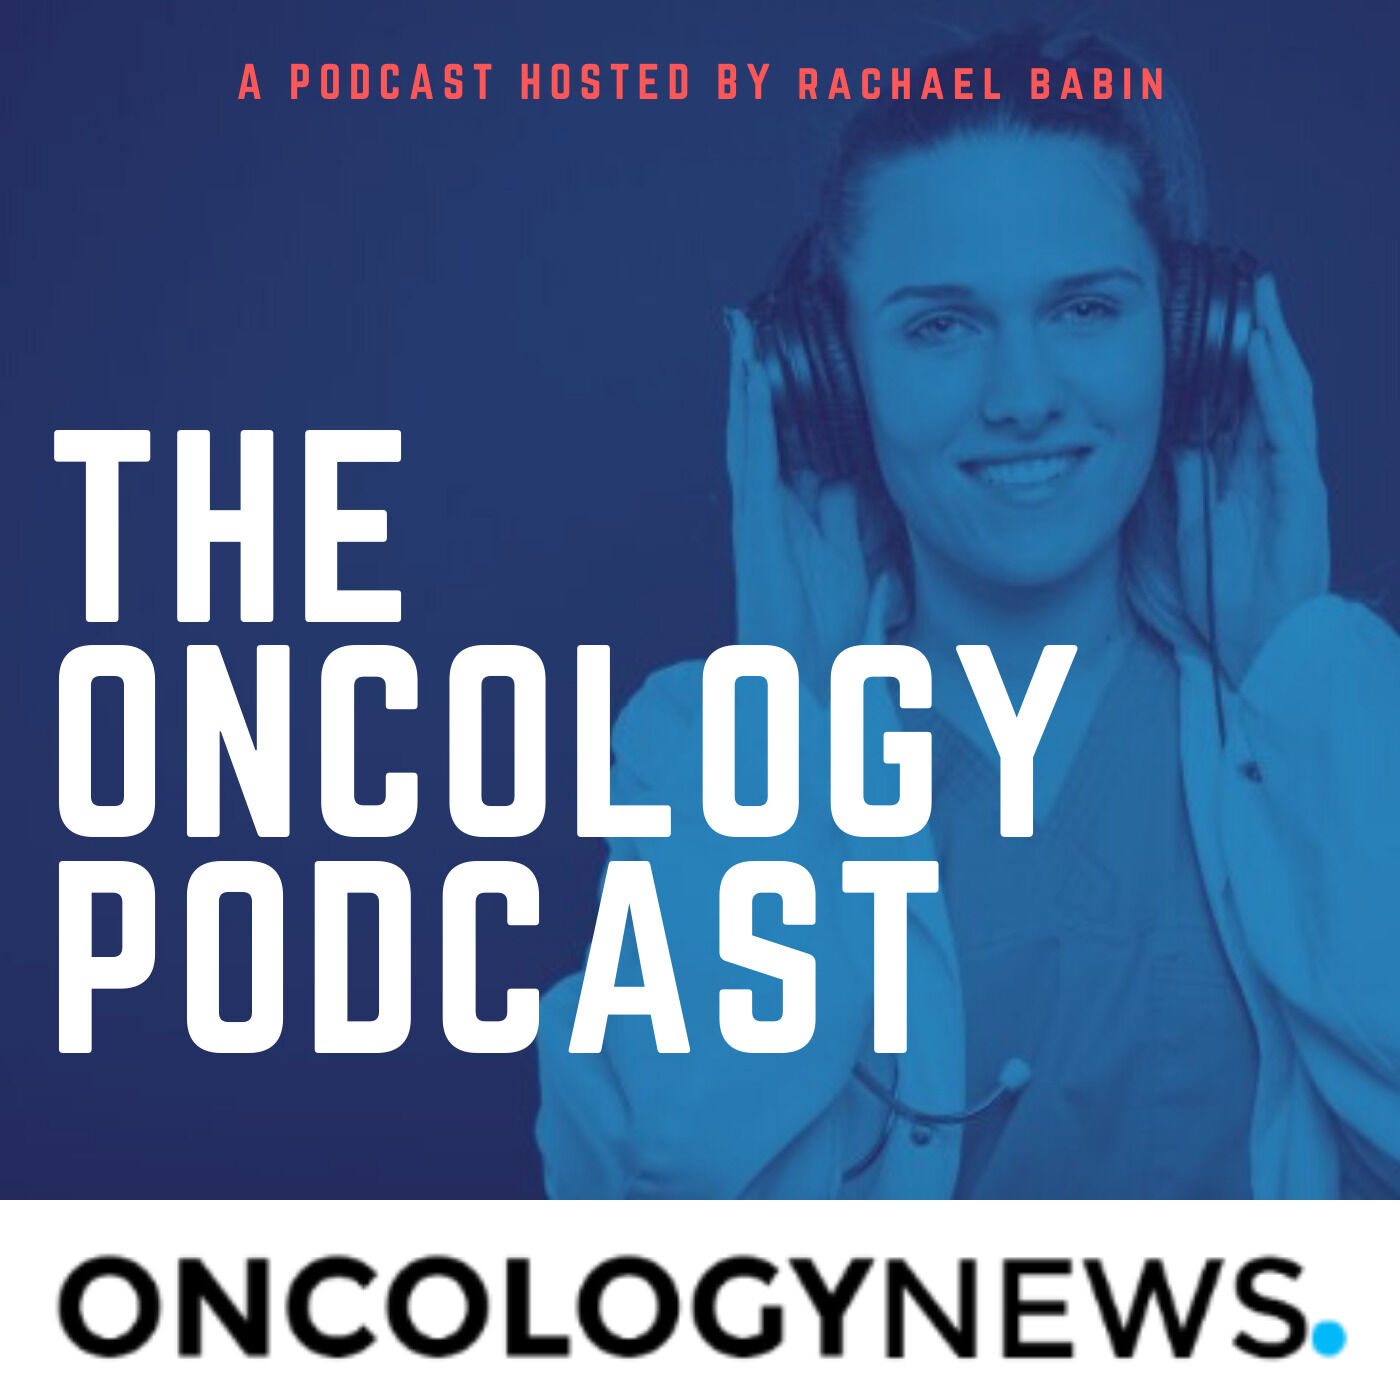 Professor Eva Segelov discusses Cancer and COVID-19 with Rachael Babin from OncologyNews.com.au